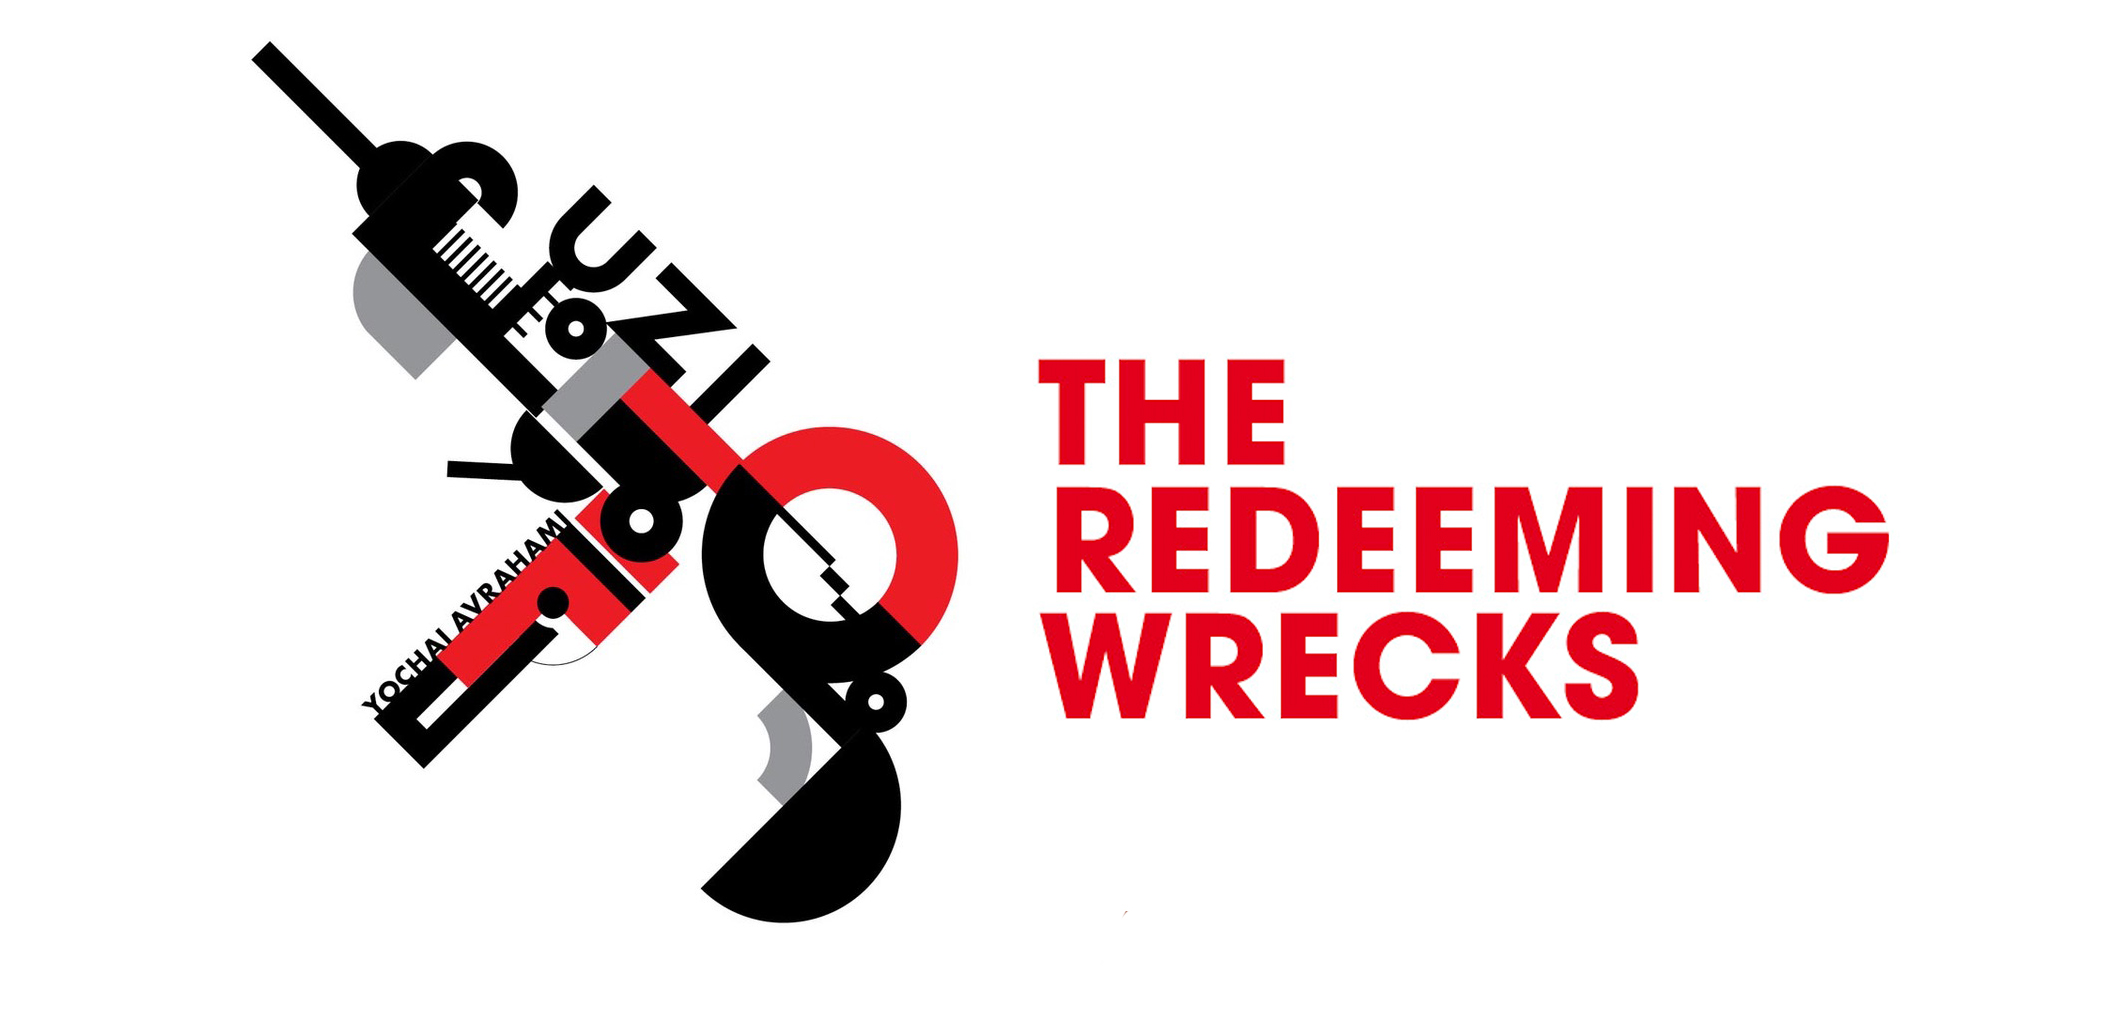 The Redeeming Wrecks. Ausstellungsgrafik UZI. | © K-N studio